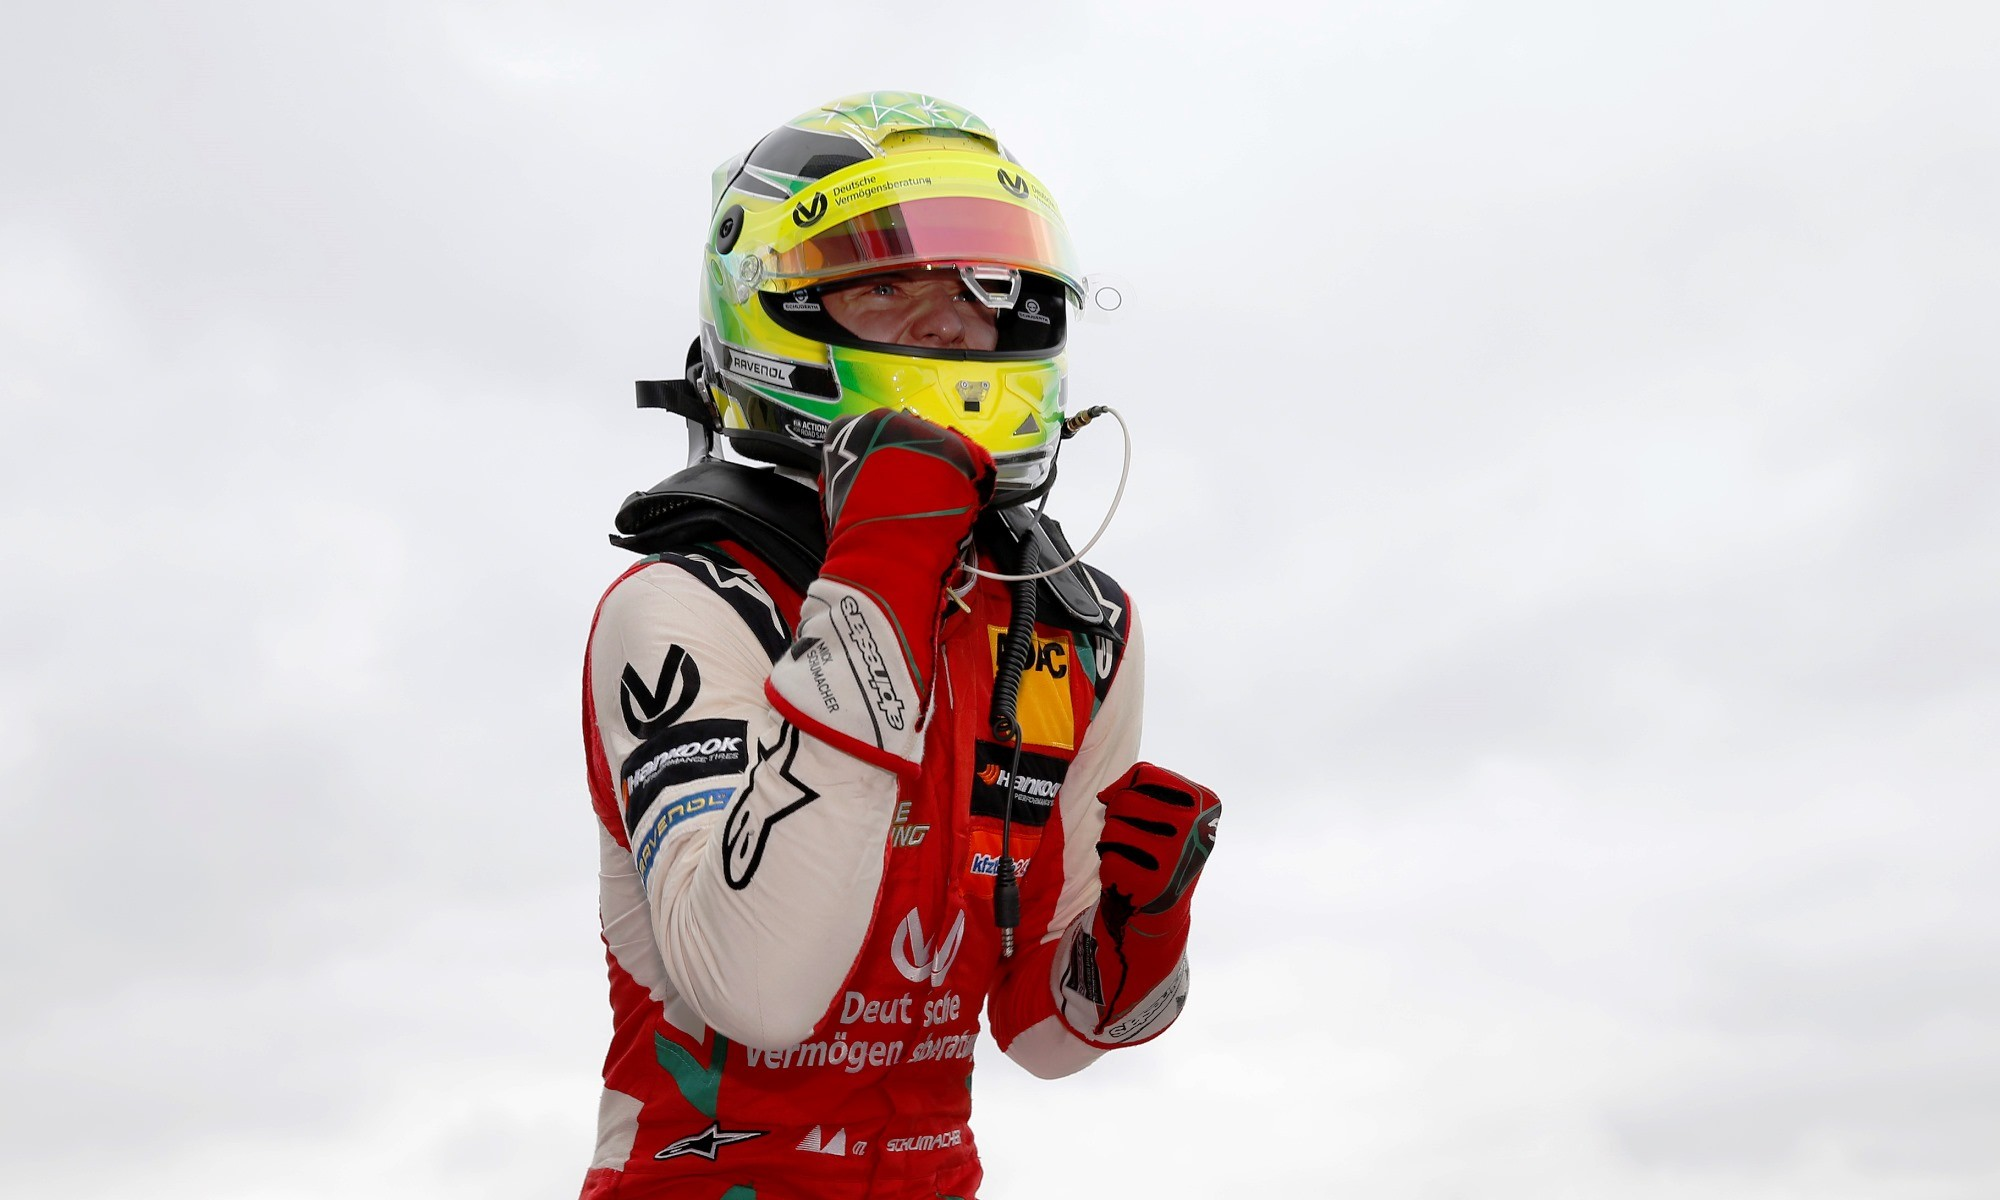 The young Schumacher celebrates on Saturday